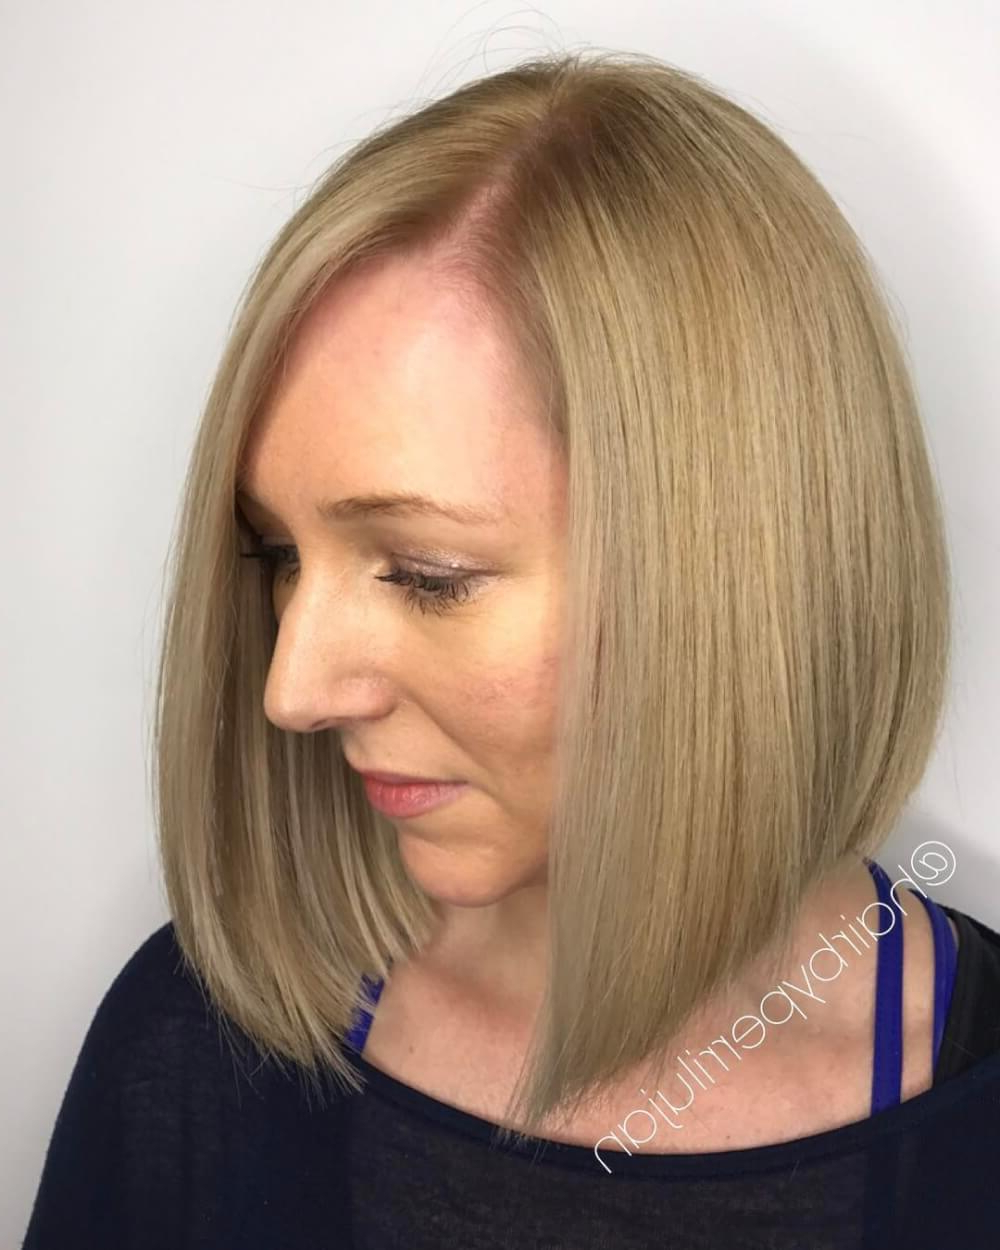 49 Chic Short Bob Hairstyles & Haircuts For Women In 2018 With Regard To Tousled Short Hairstyles (View 12 of 25)